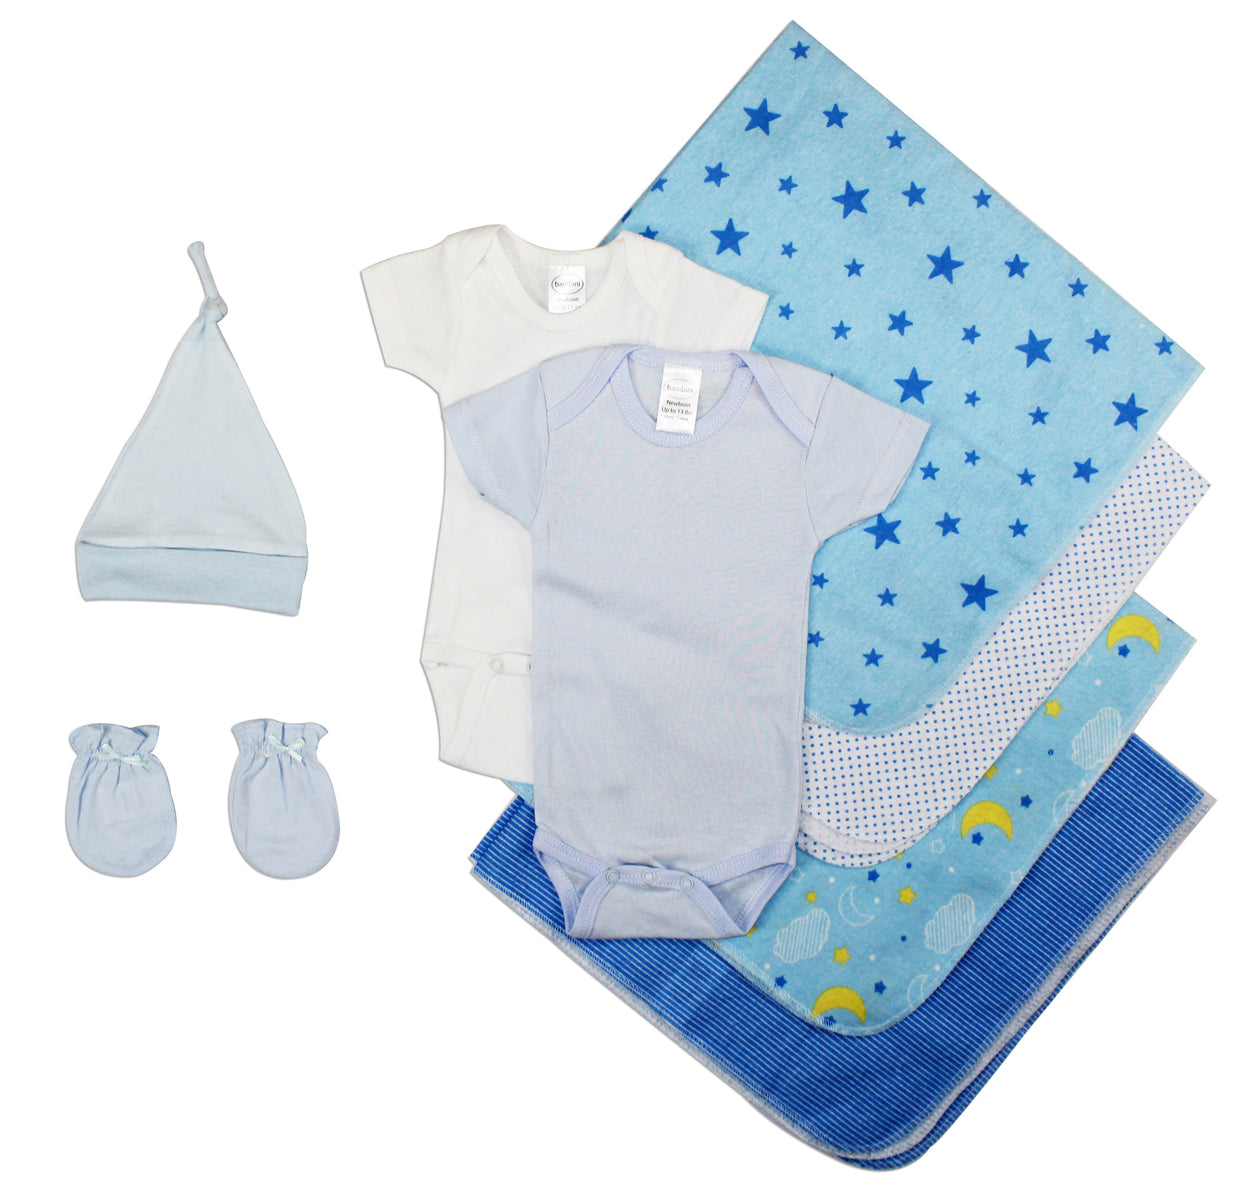 Essential Newborn Baby Boy 8 Piece Layette Set